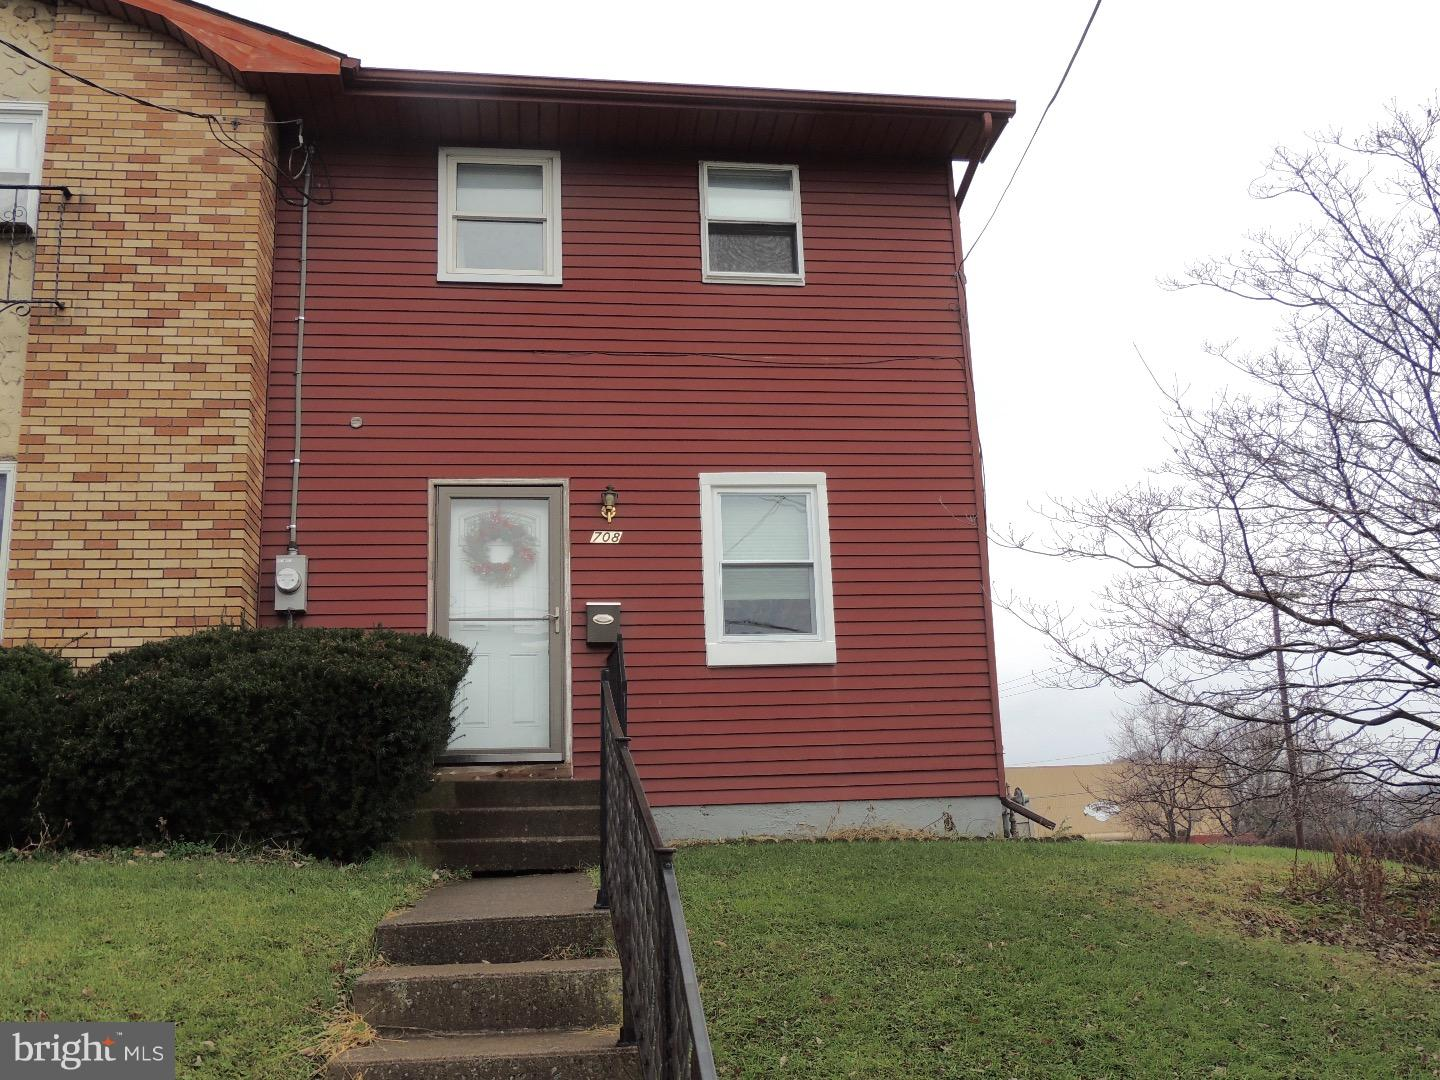 708 S 10TH STREET, ALLENTOWN, PA 18103